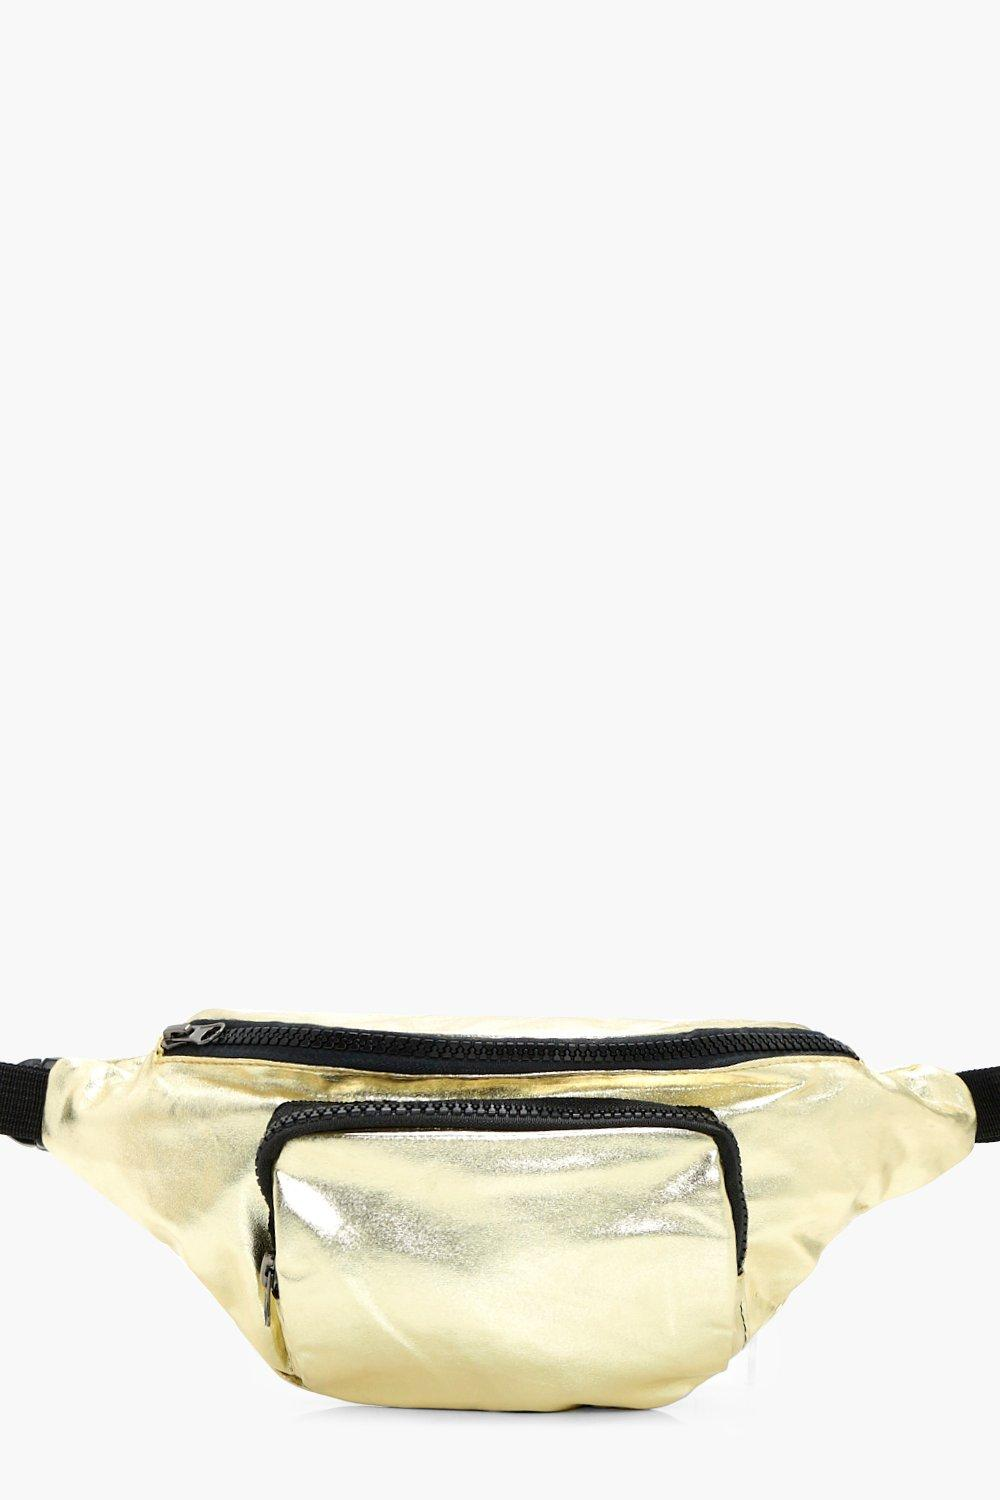 Metallic Gold Bumbag - gold - Freya Metallic Gold